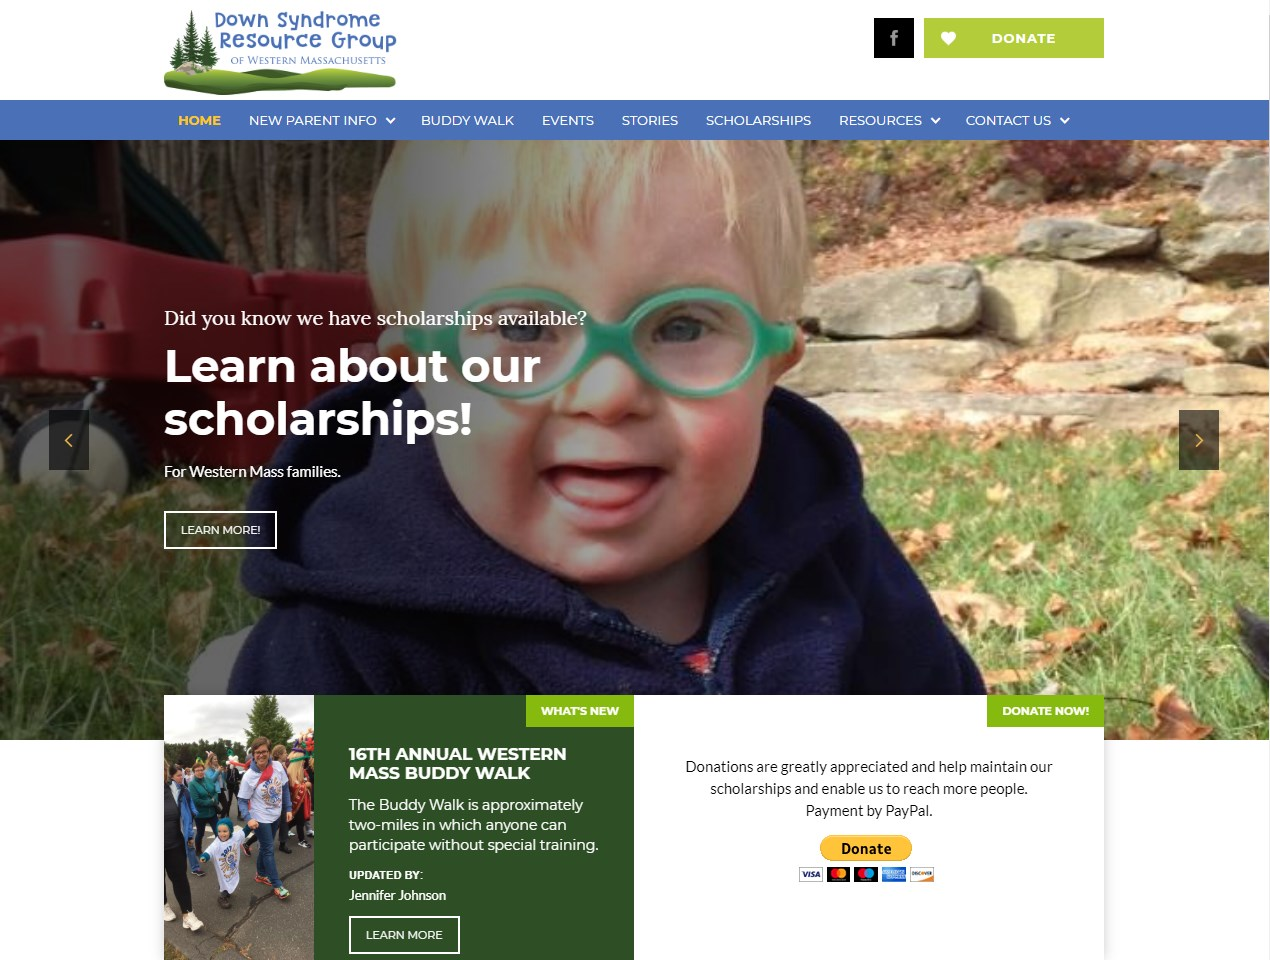 Down Syndrome Resource Group website screenshot